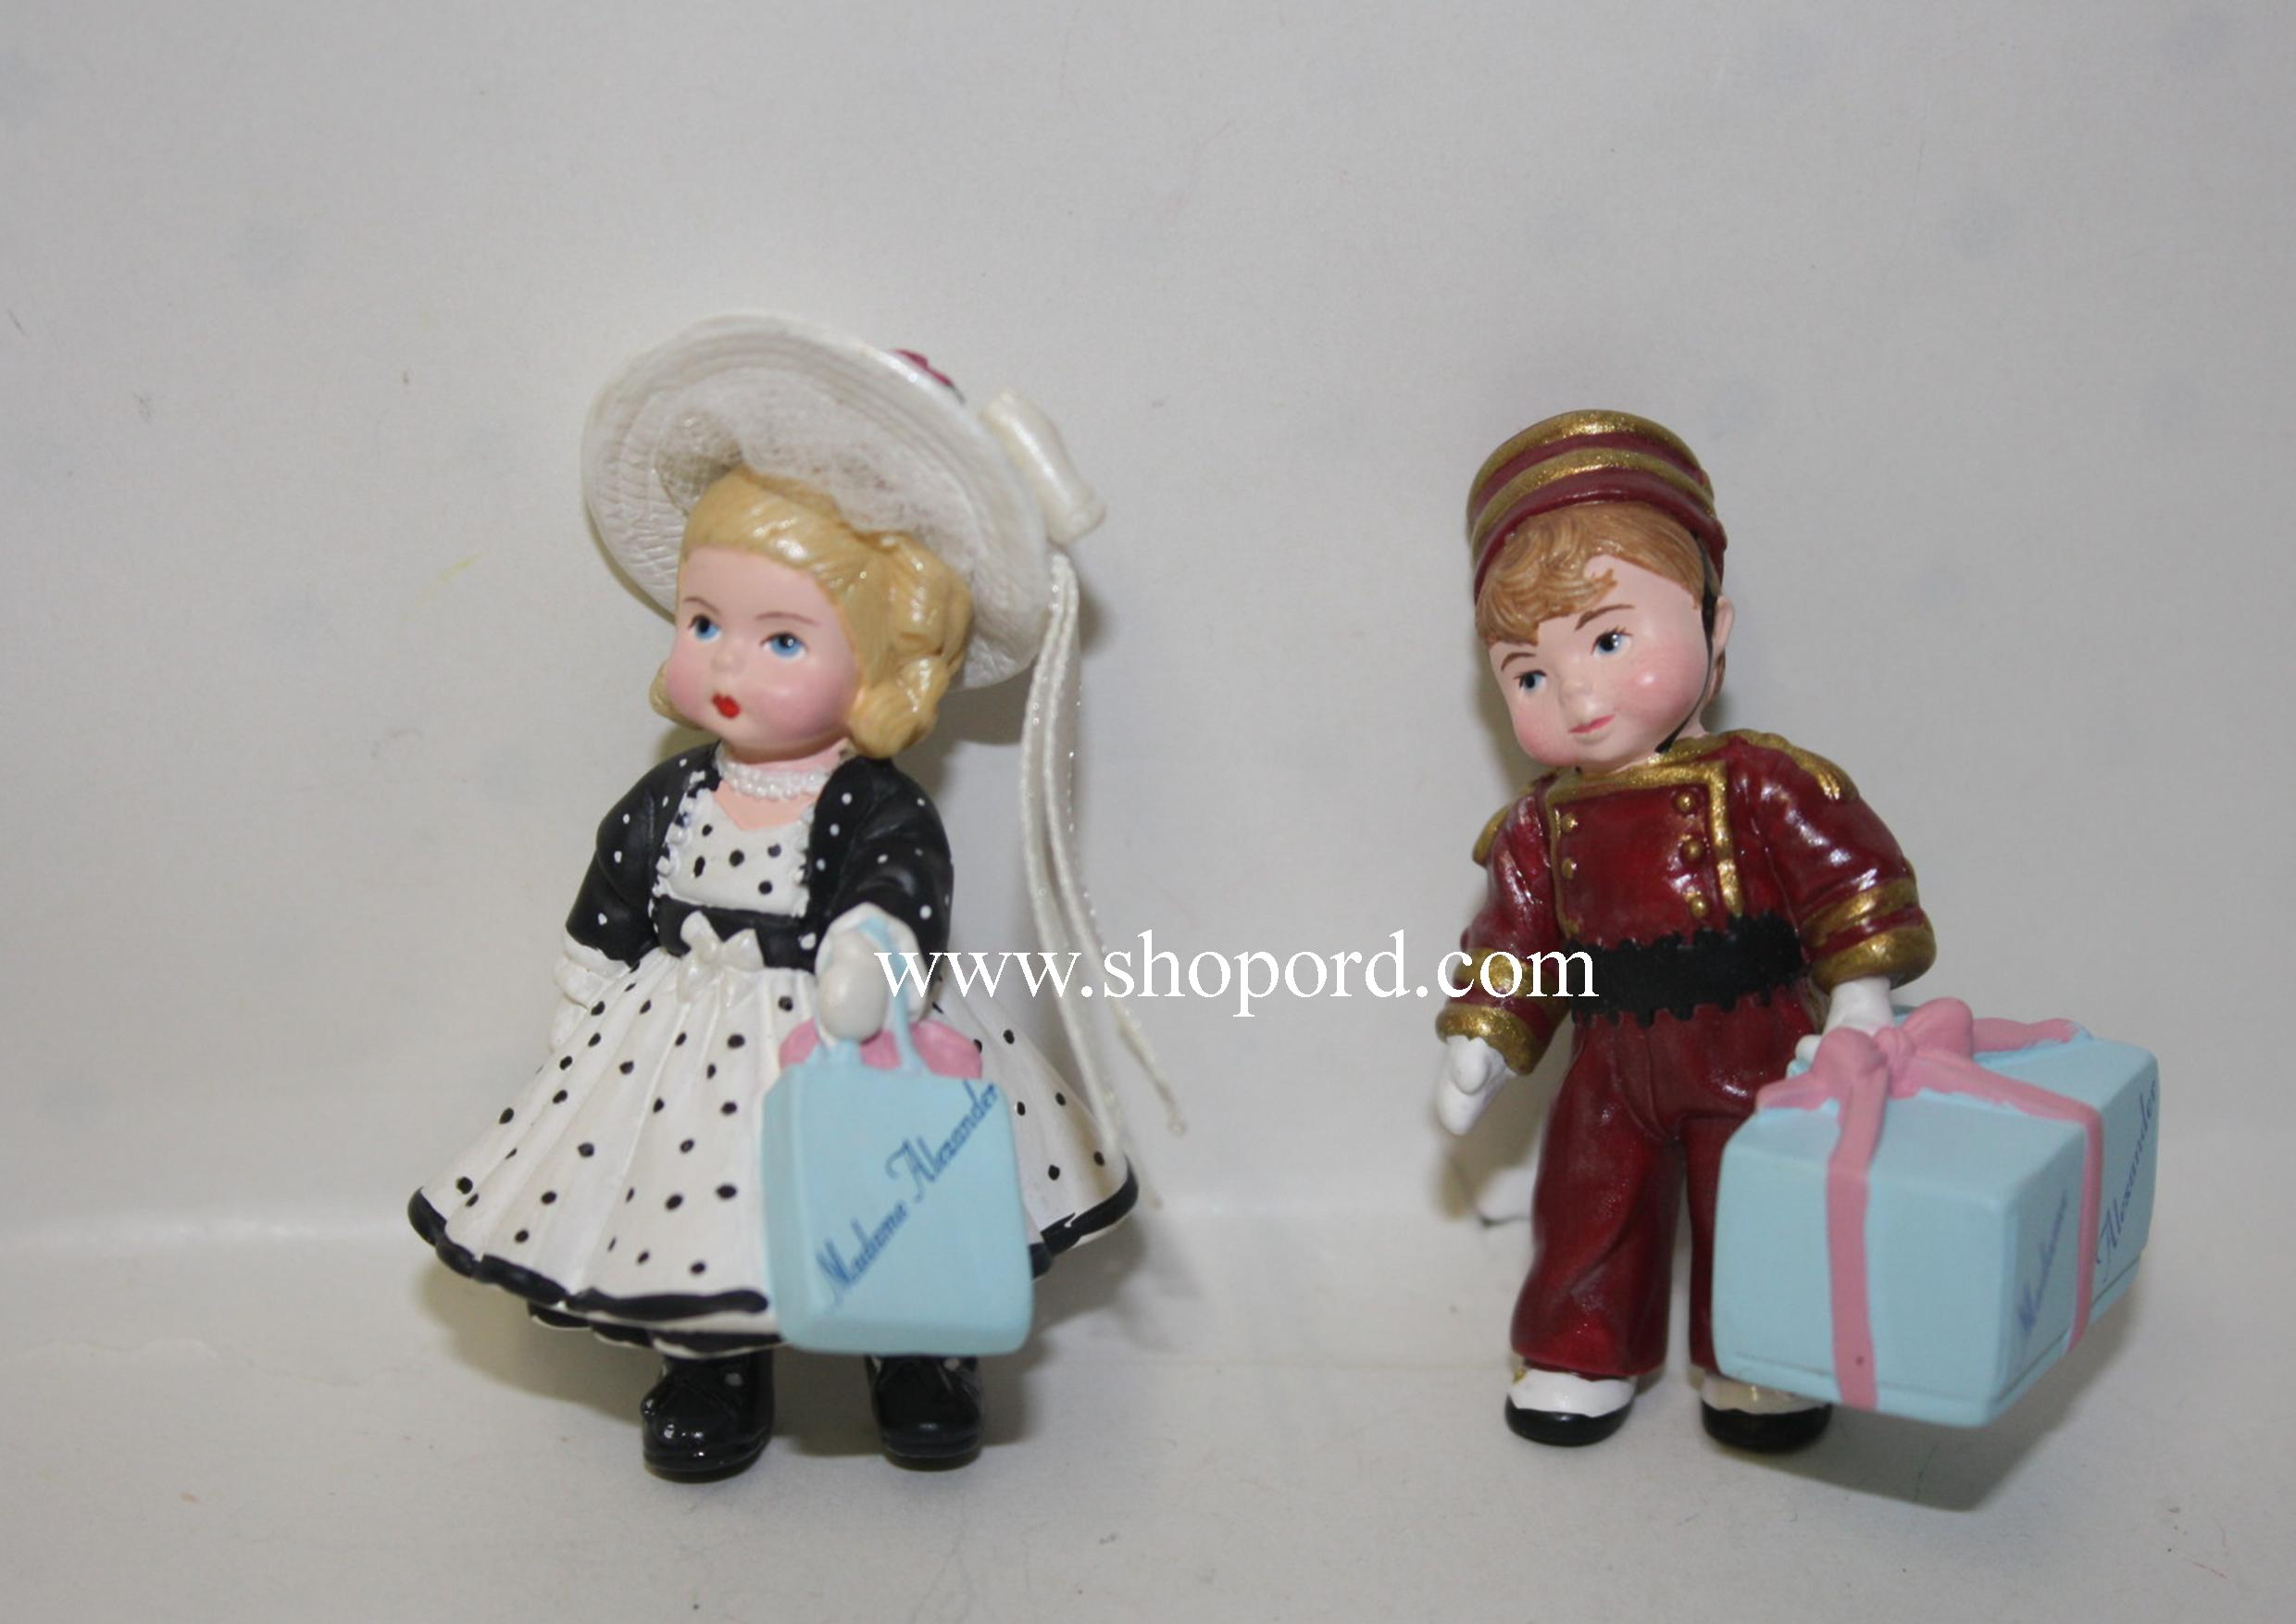 Hallmark 1999 Merry Miniatures Park Avenue Wendy And Alex The Bellhop Set of 2 Figurines Madame Alexander QFM8499